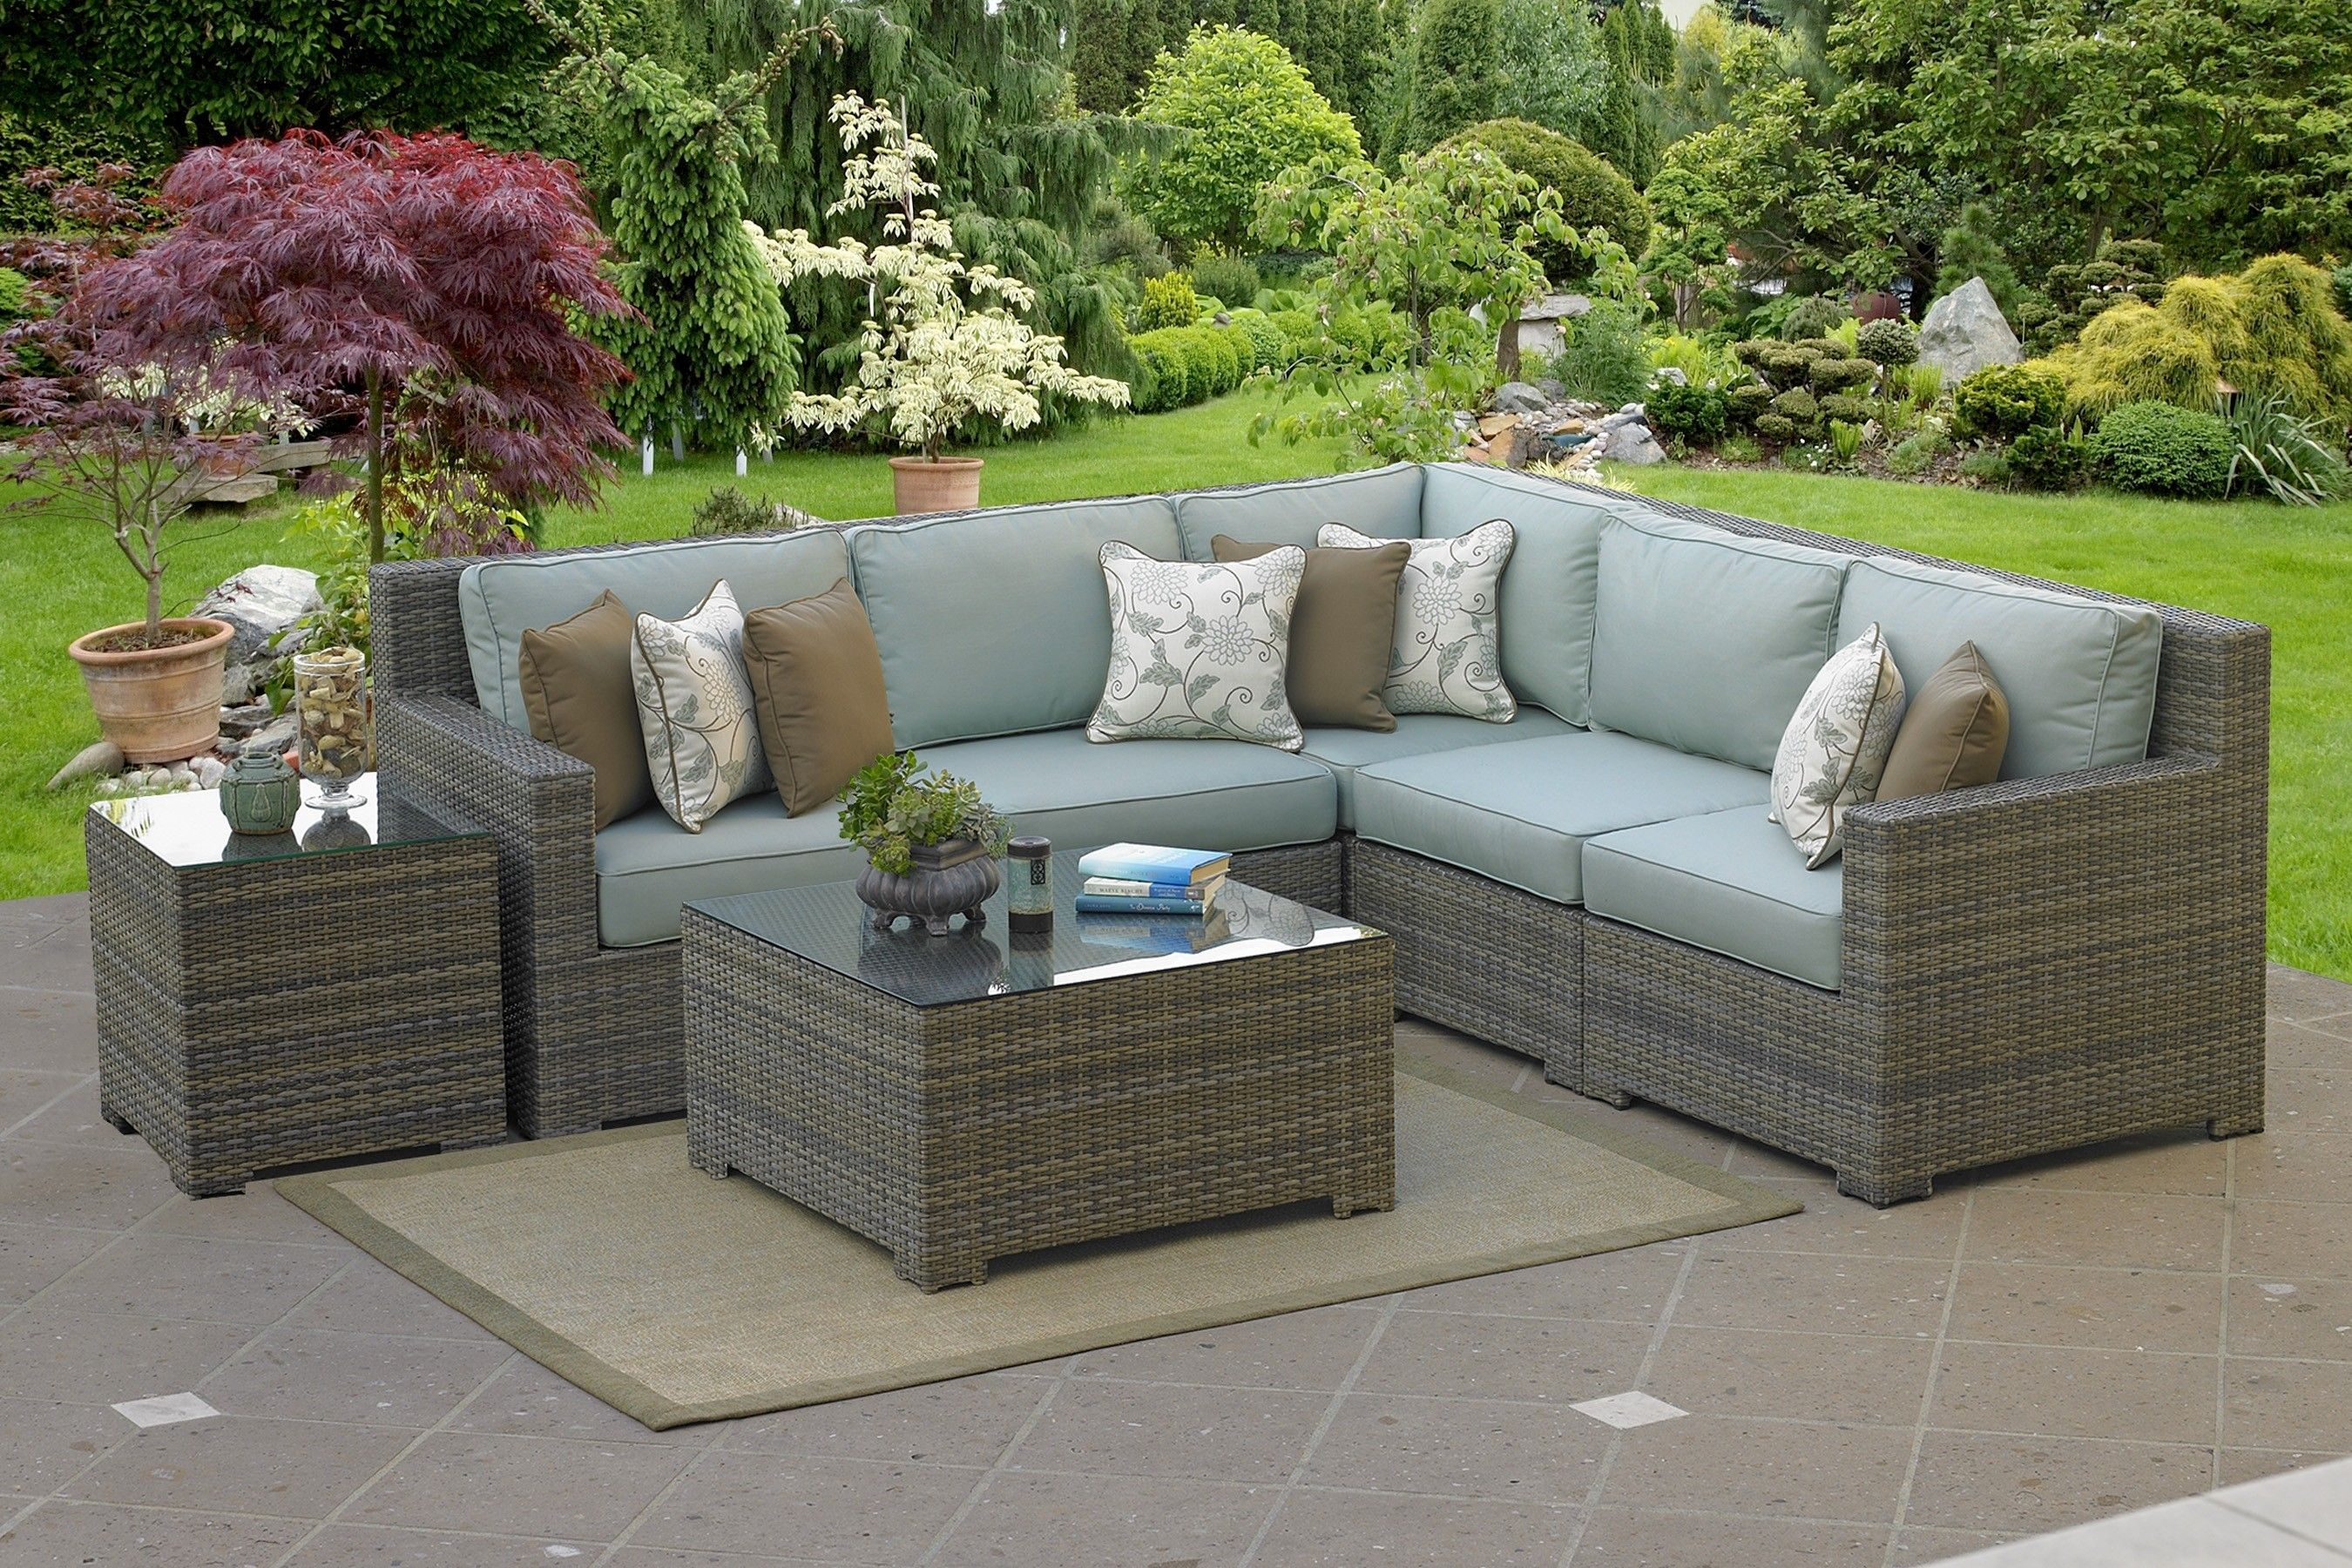 High Back Sectional Sofa | L Shaped Outdoor Sectional ... on Hhh Outdoor Living id=81172